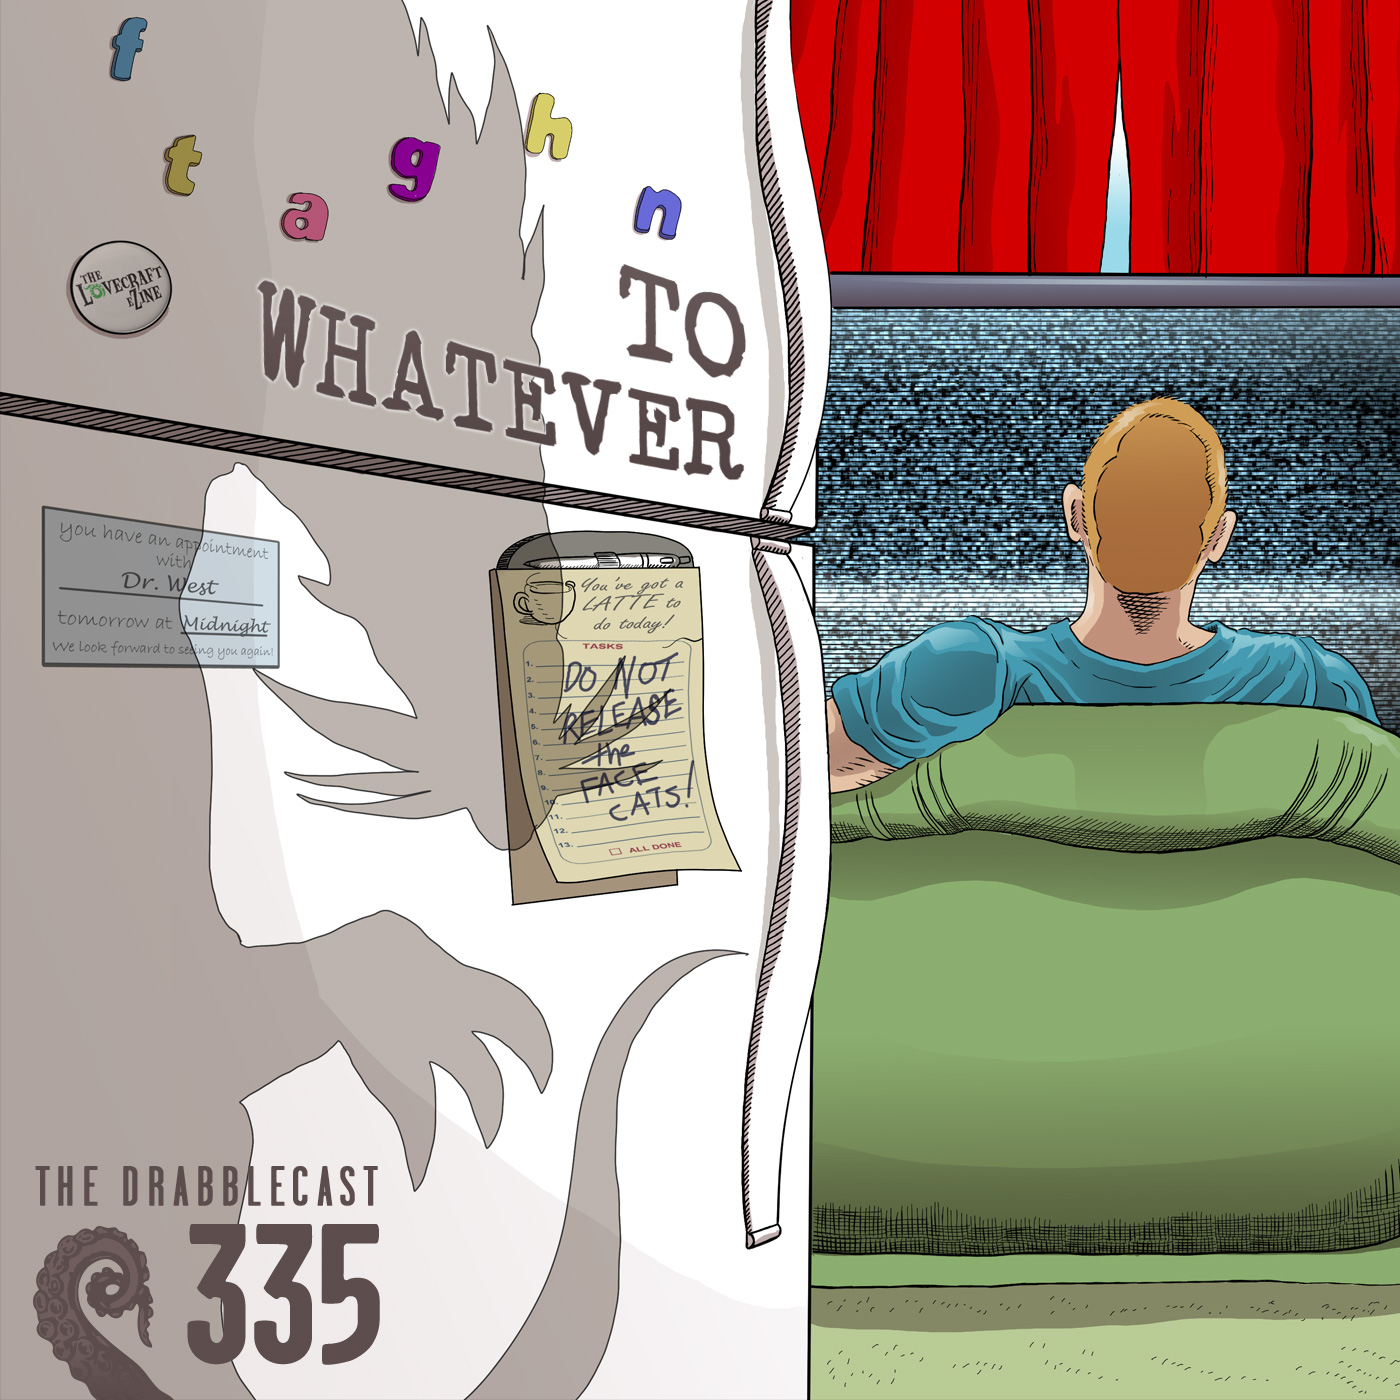 Cover for Drabblecast episode 335, To Whatever, by Mike Dominic